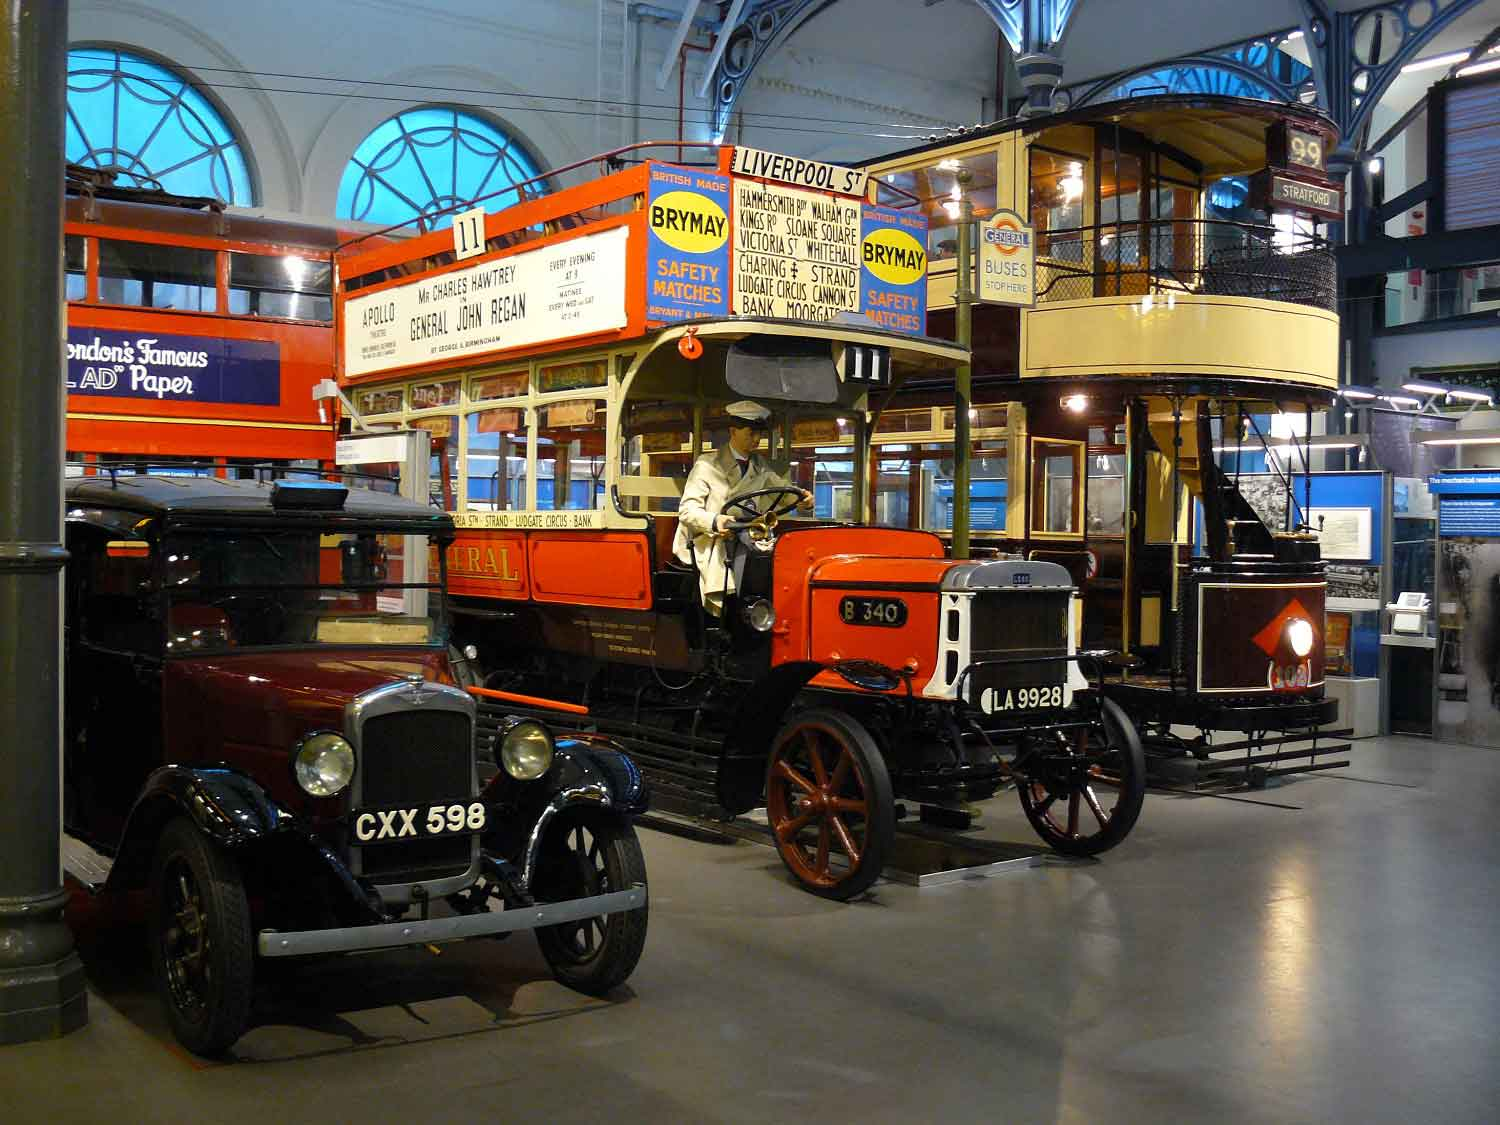 buses london transport museum ltm